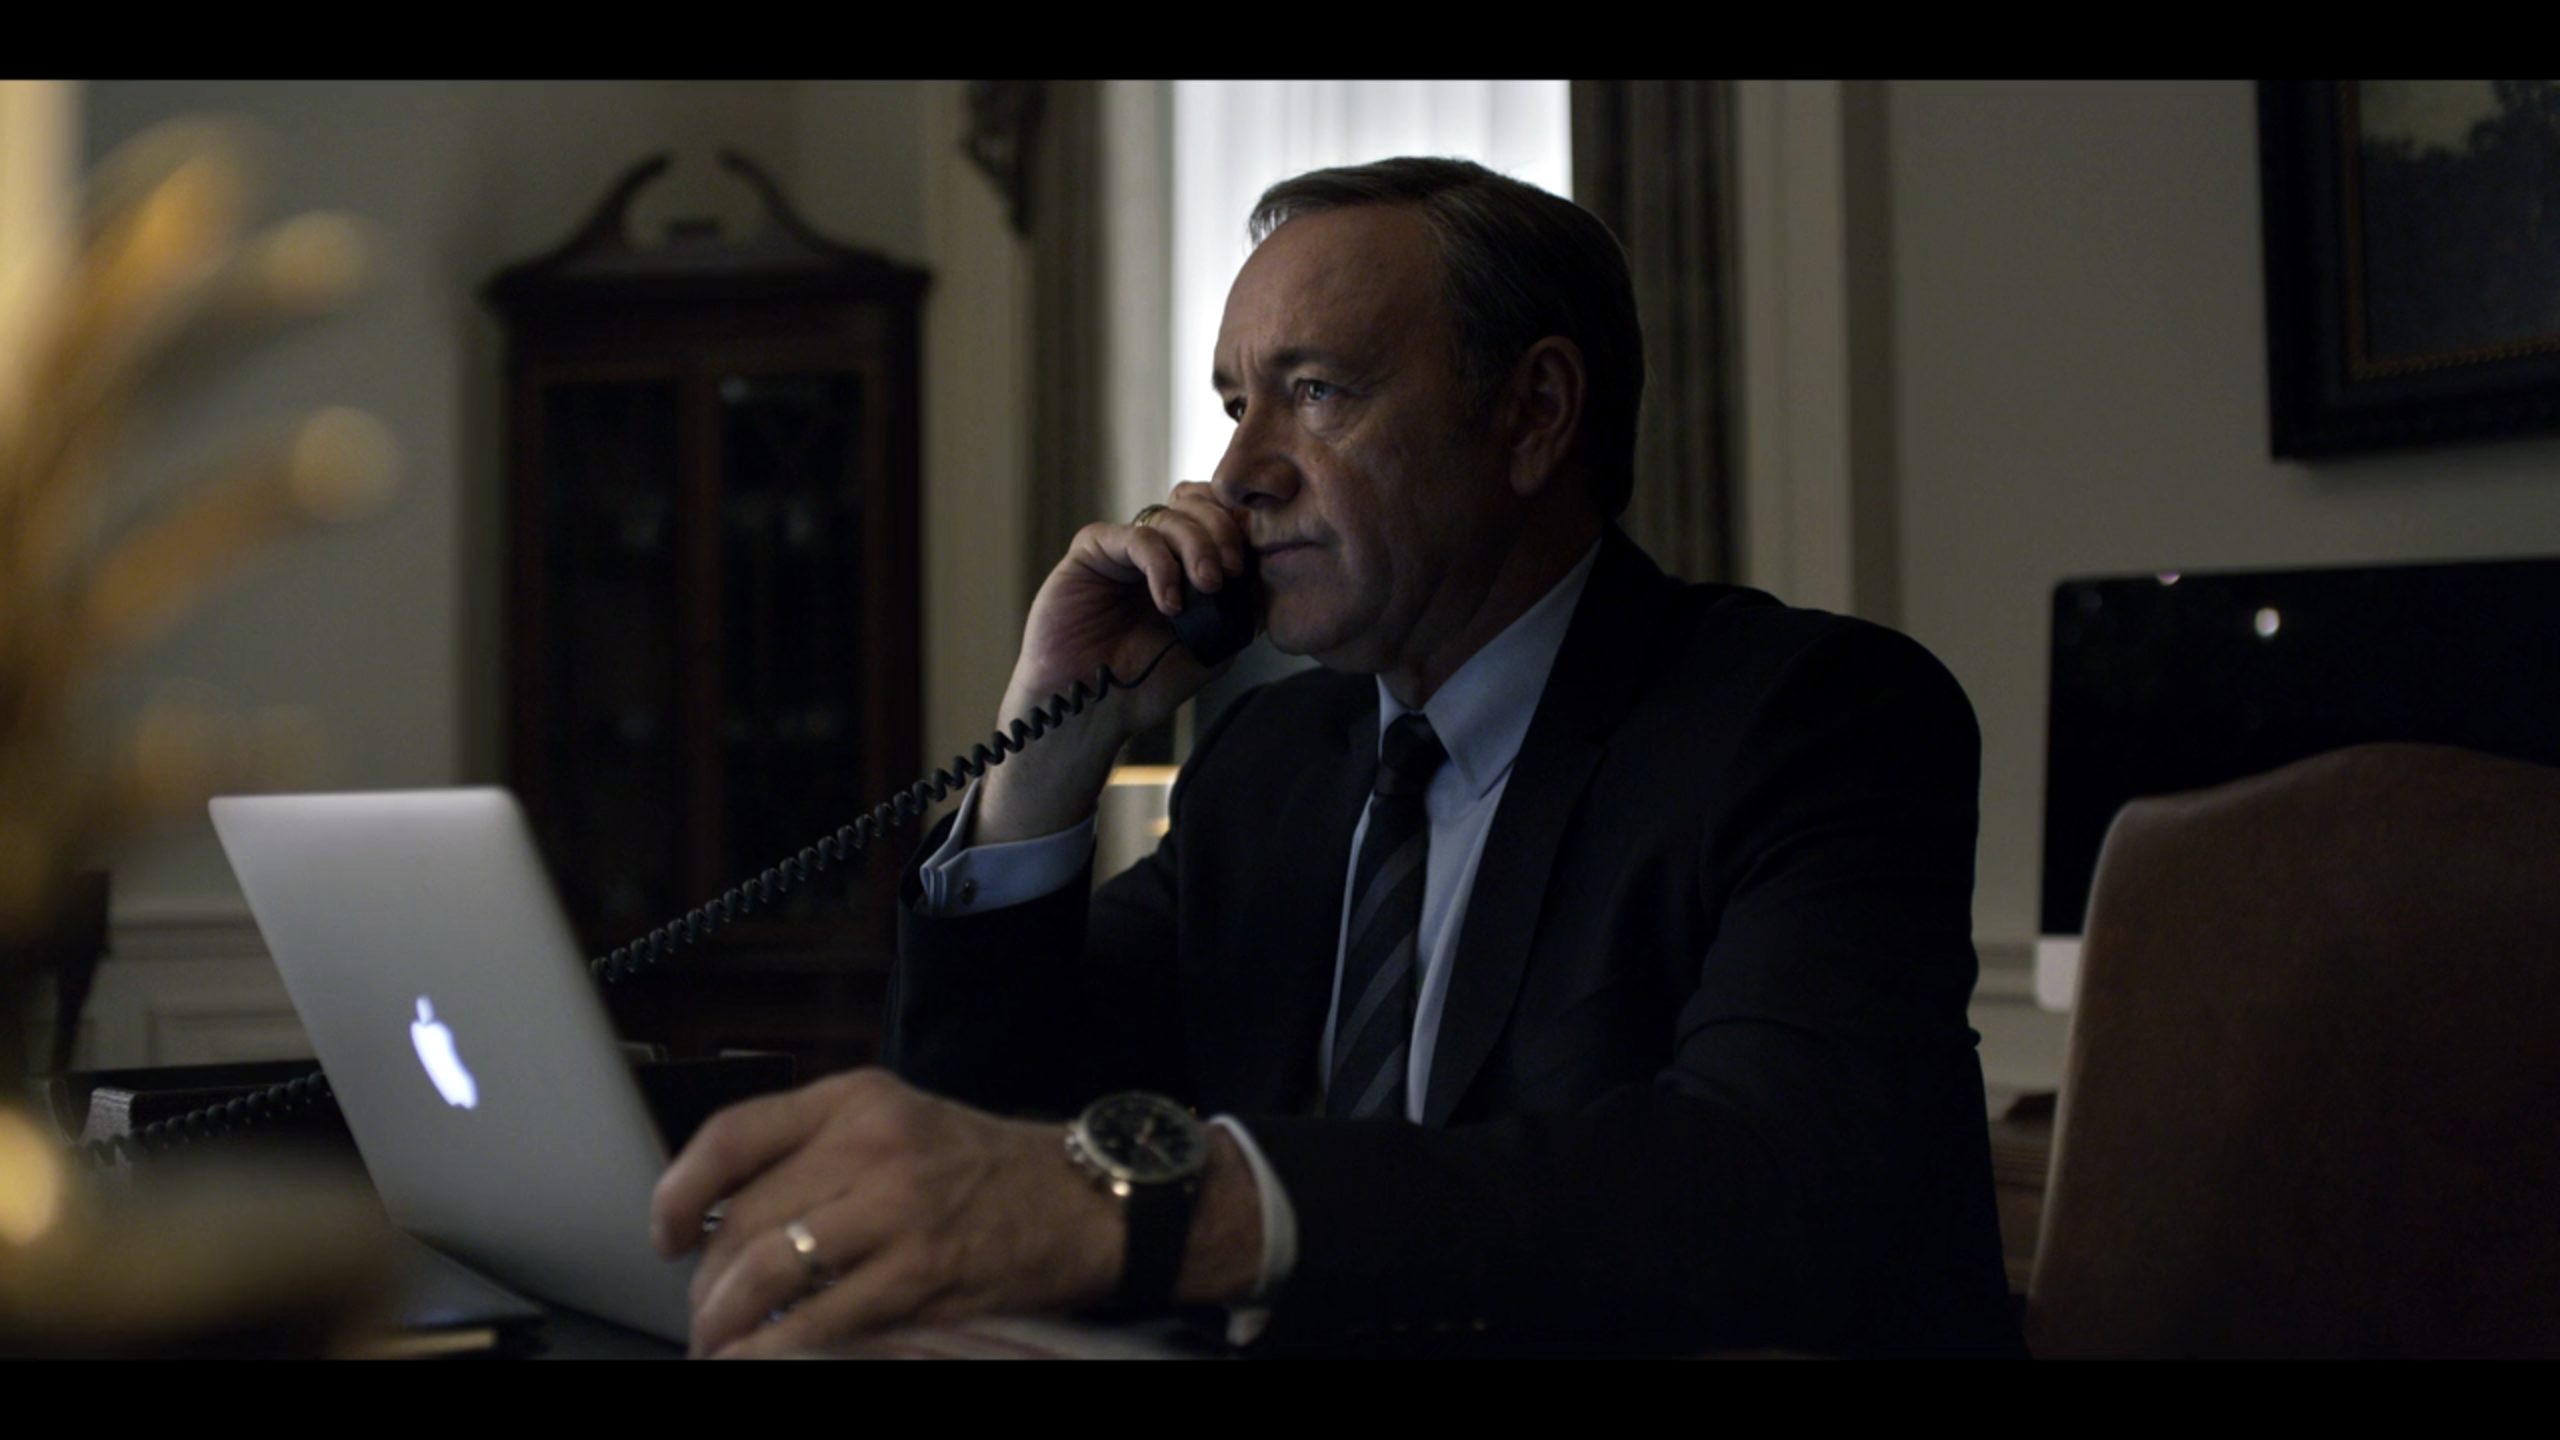 President Frank Underwood, played by Kevin Spacey in the Netflix Original Series 'House of Cards'